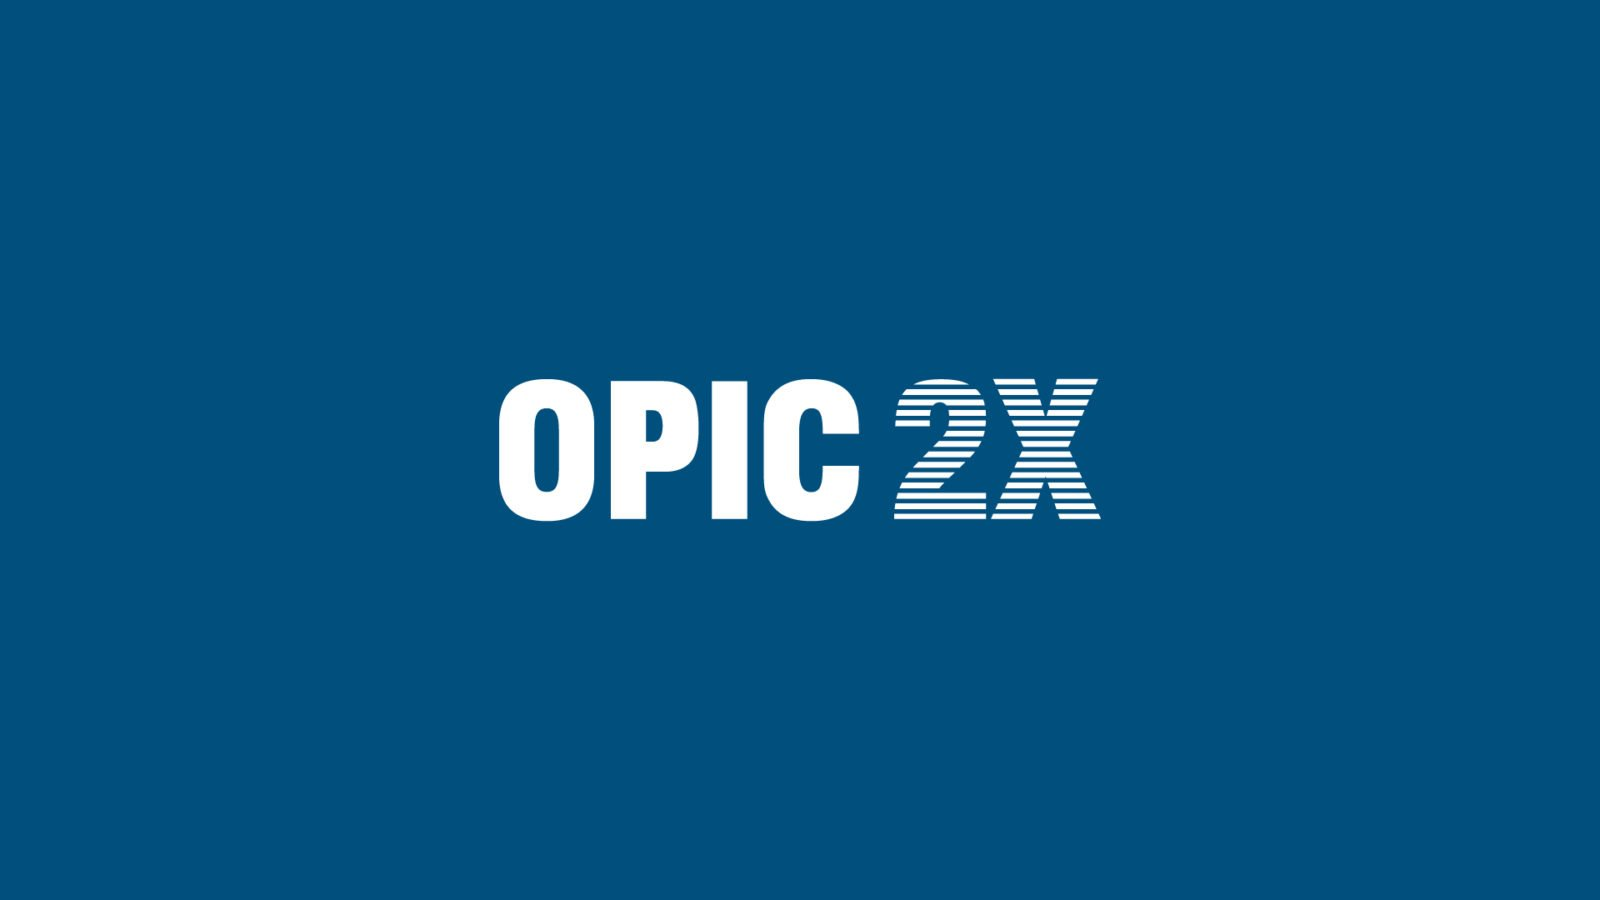 OPIC 2X Program Logo and Naming for US Government Economic Program by Bullhorn